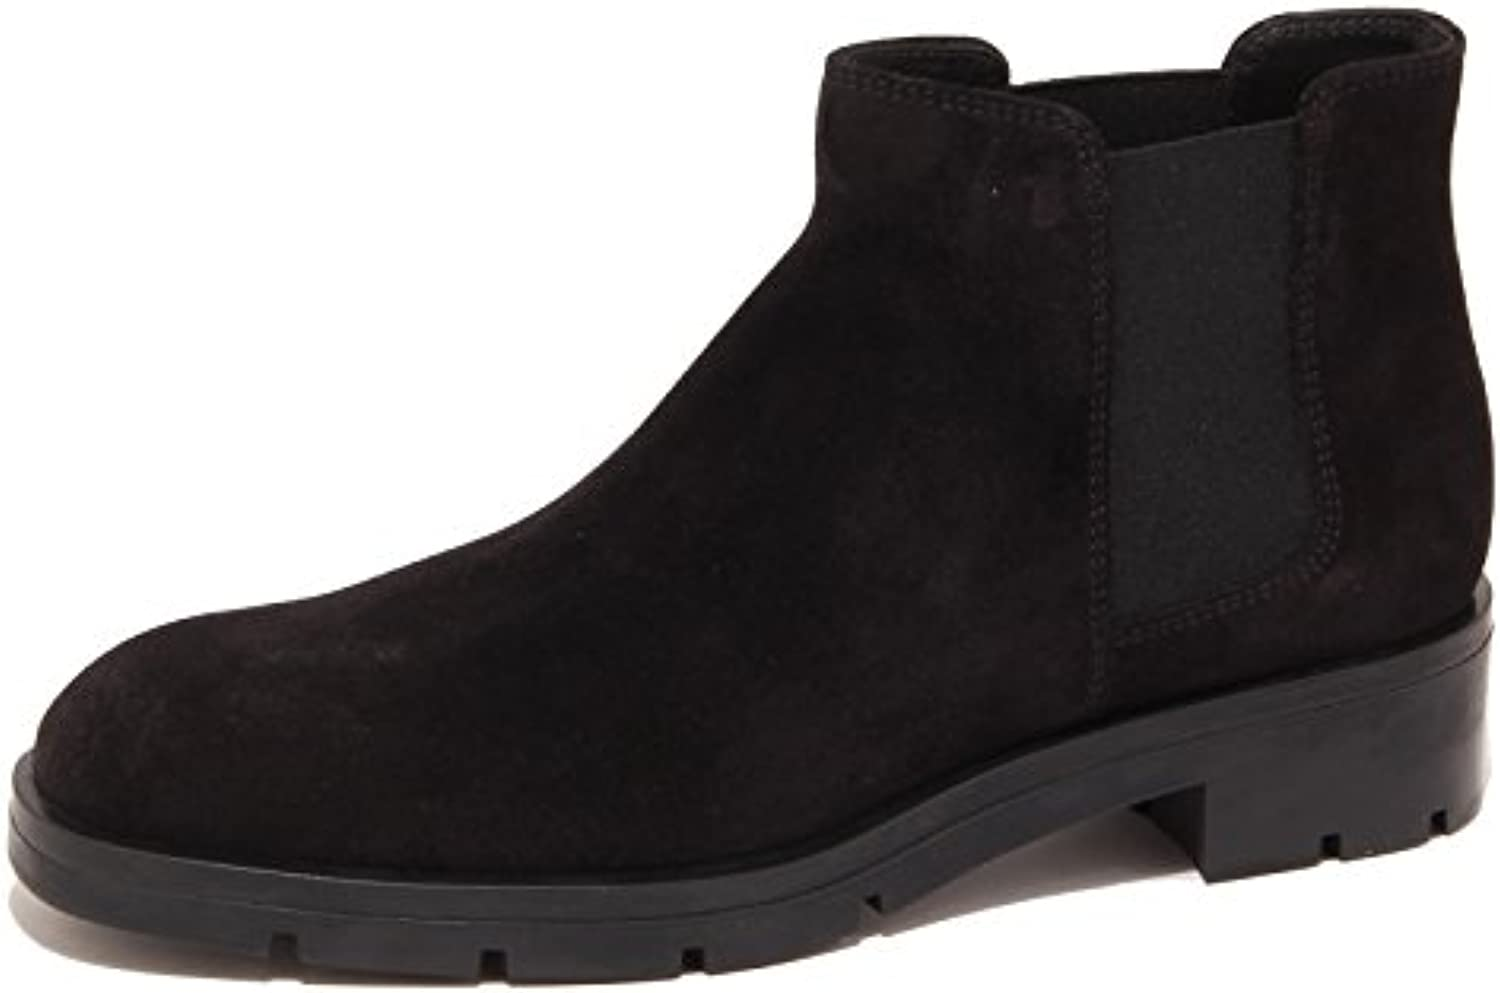 3259P beatles TOD'S GOMMA PESANTE nero stivaletto donna boot woman